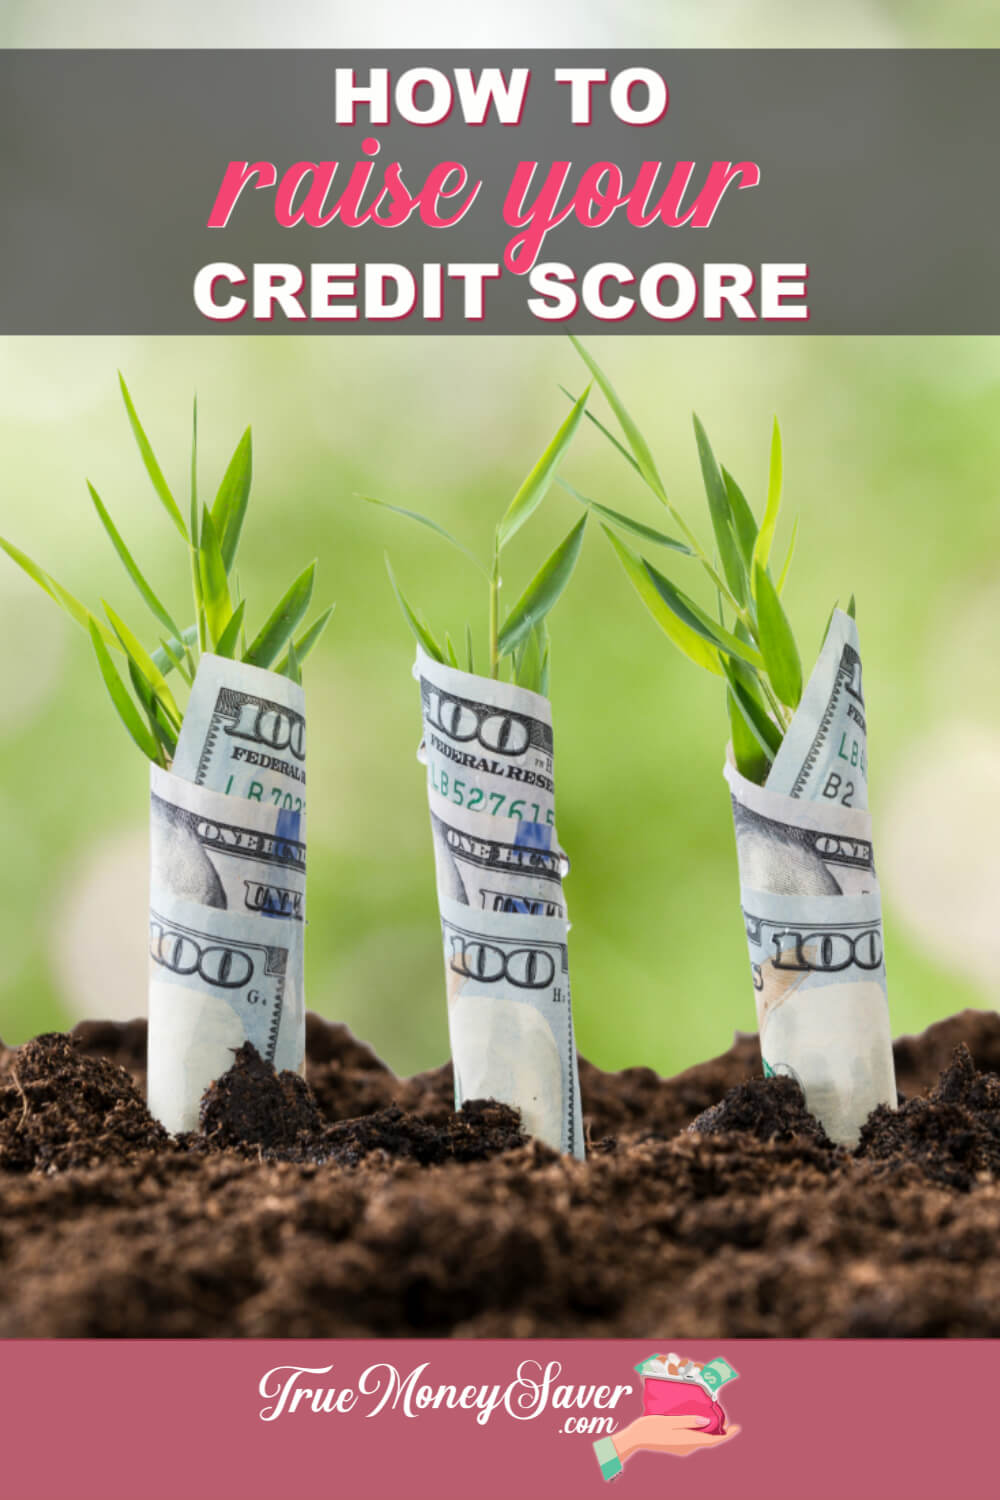 How To Raise Your Credit Score